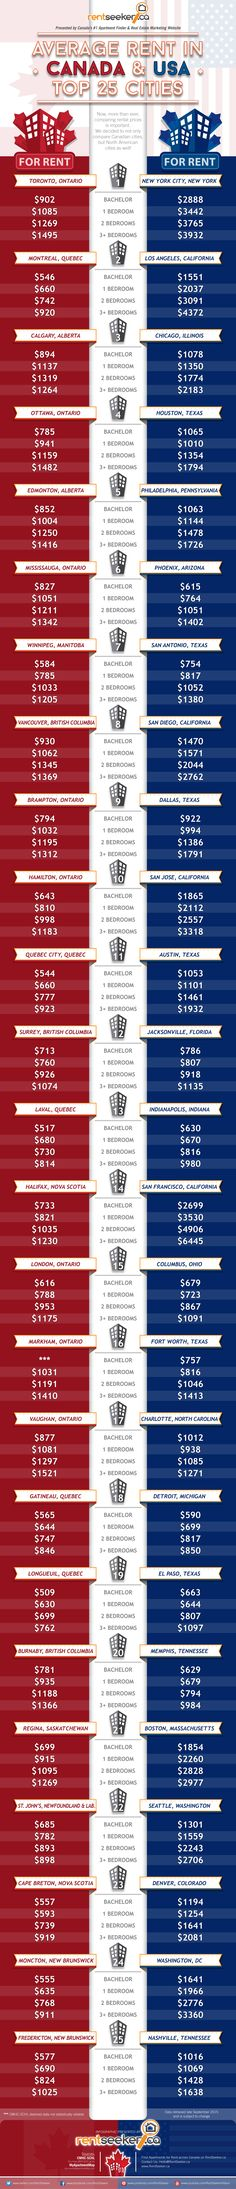 Comparing the Cost to Rent Apartments in Cities across Canada and the U.S. via www.RentSeeker.ca